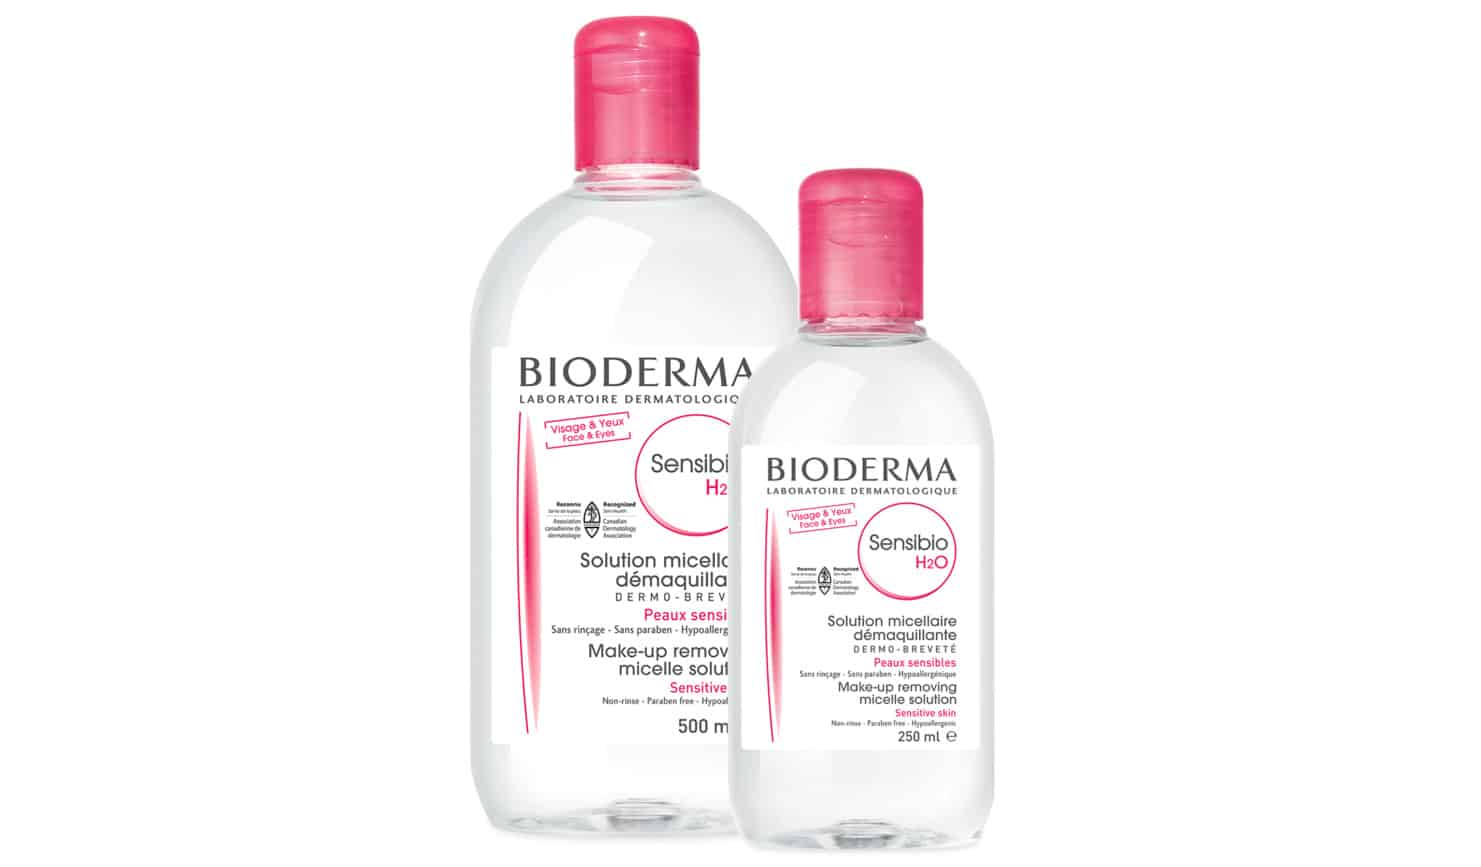 Micelle Solution by Bioderma